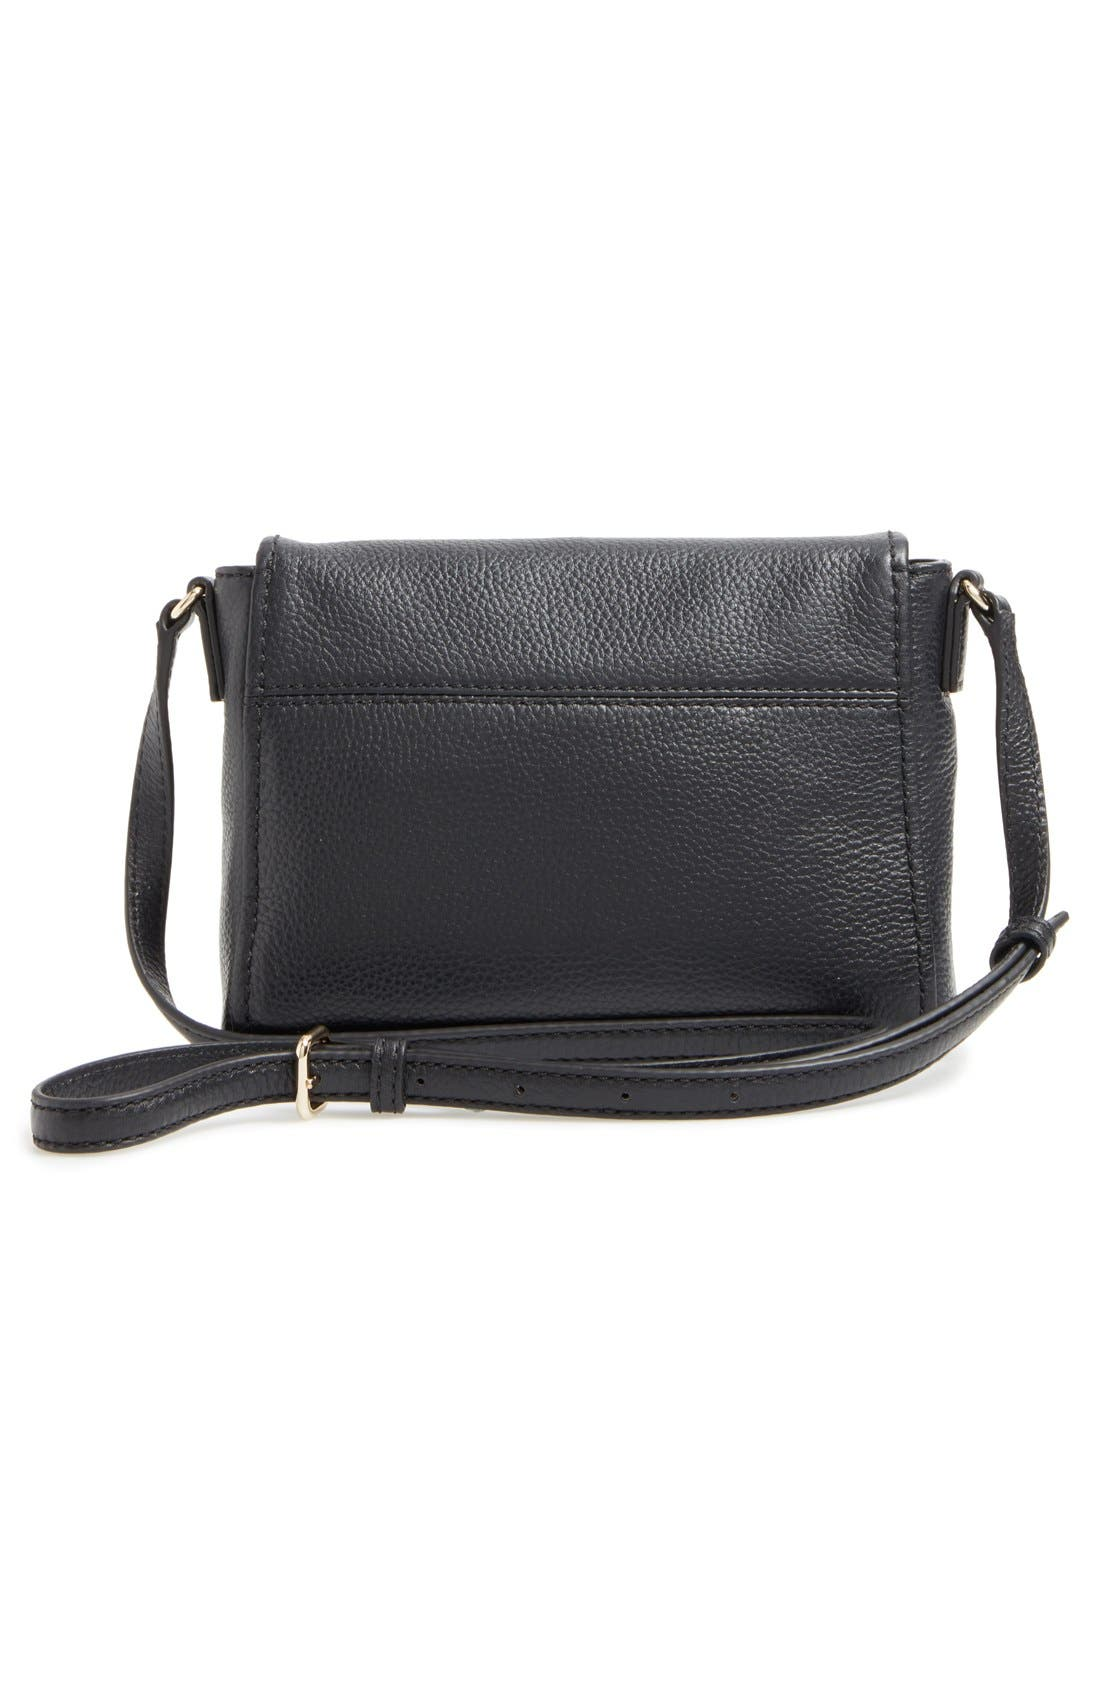 Alternate Image 3  - kate spade new york 'cobble hill - mini toddy' leather crossbody bag